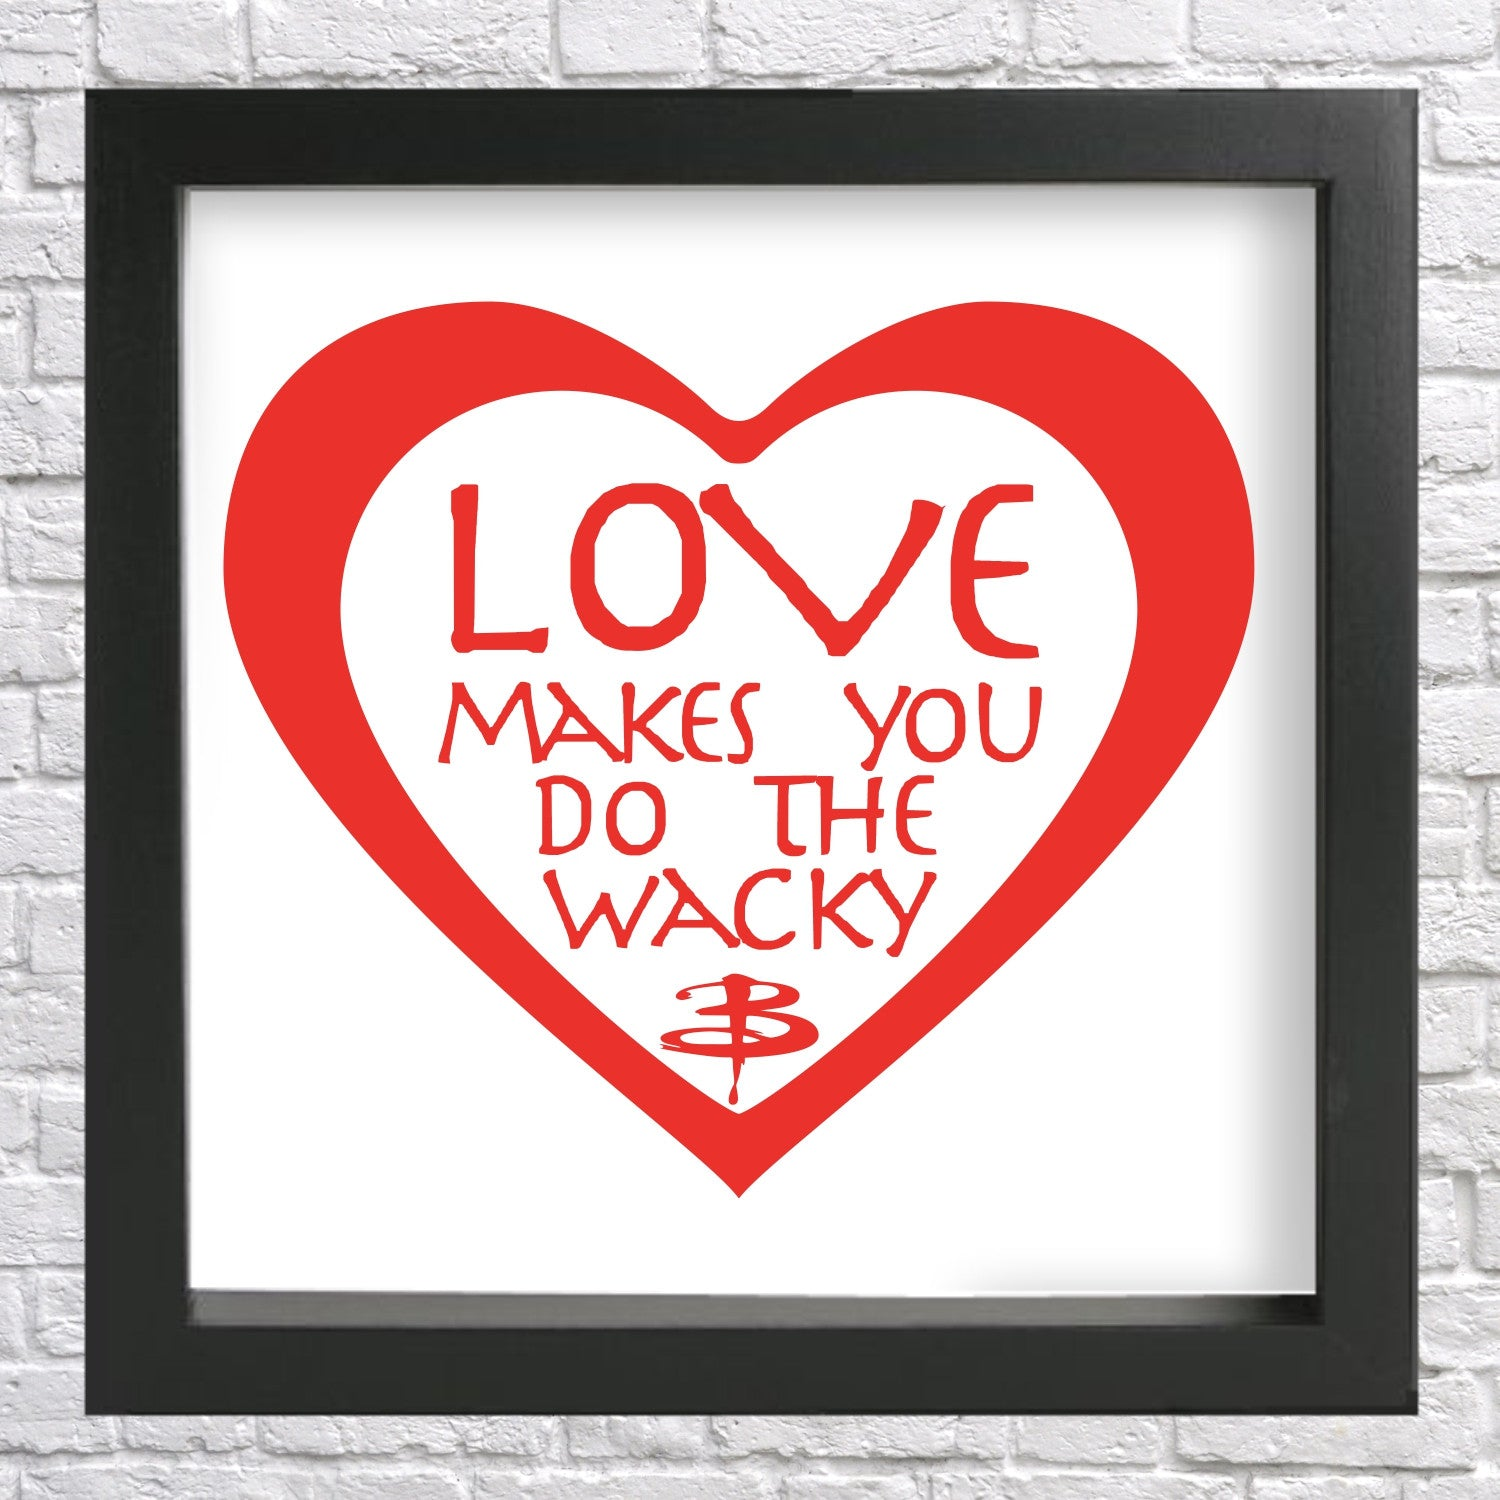 Love Makes You Do the WACKY, Buffy the Vampire Slayer-inspired Vinyl Wall Decal